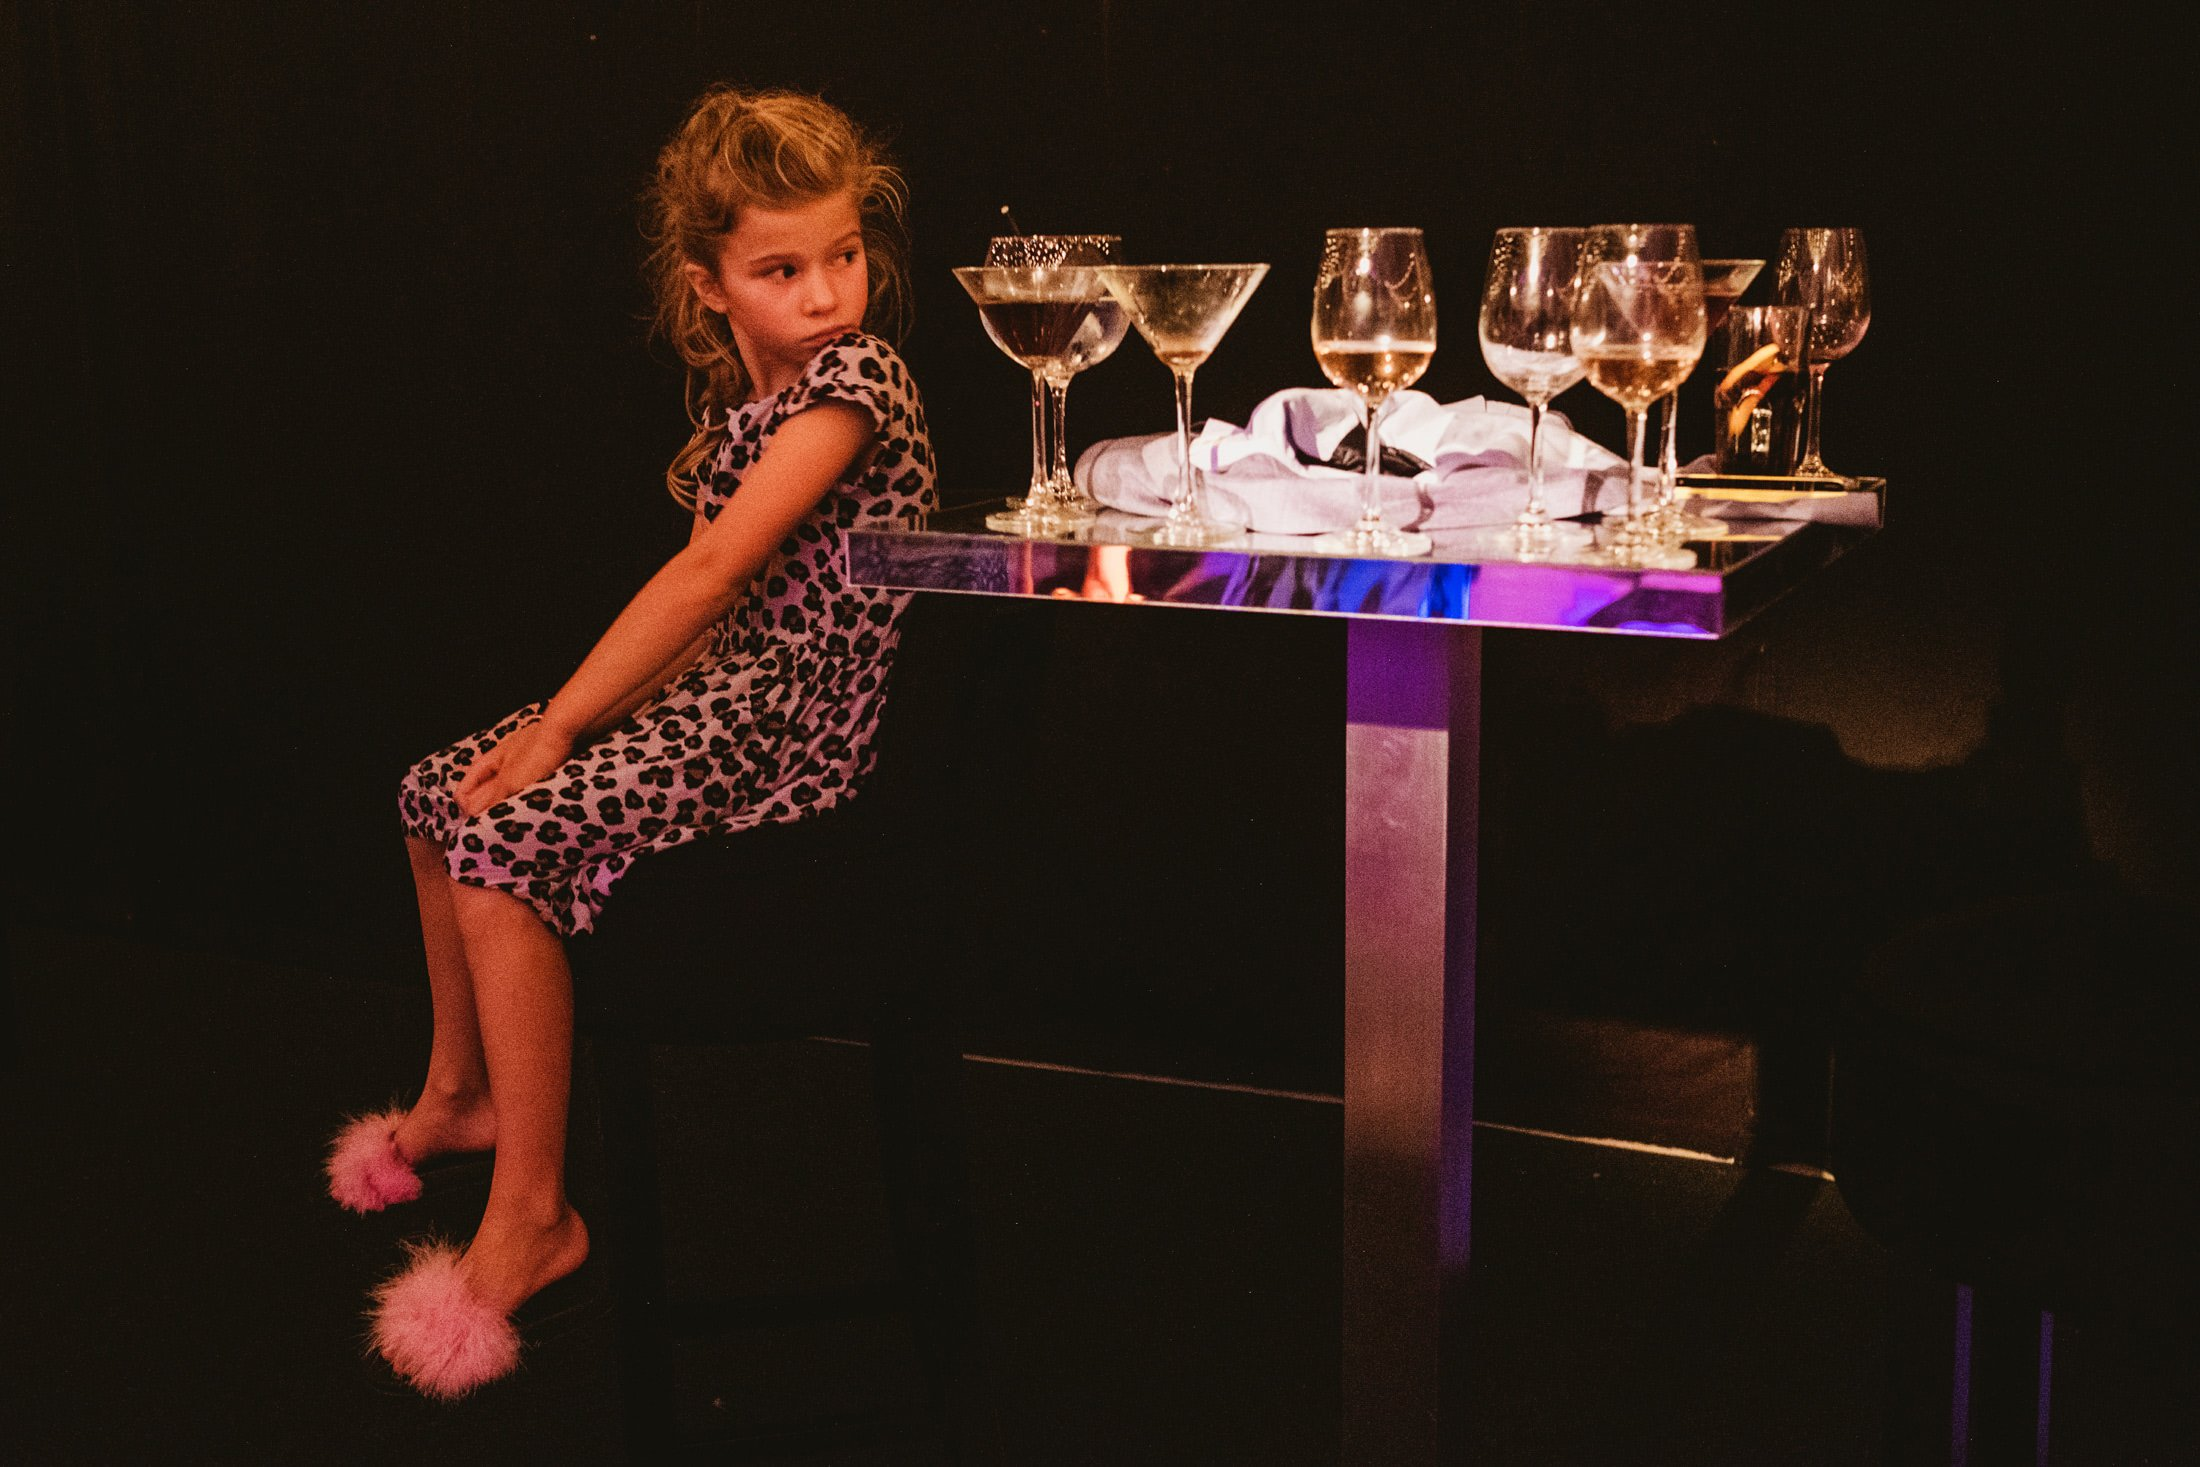 girl with wine glasses next to the dance floor